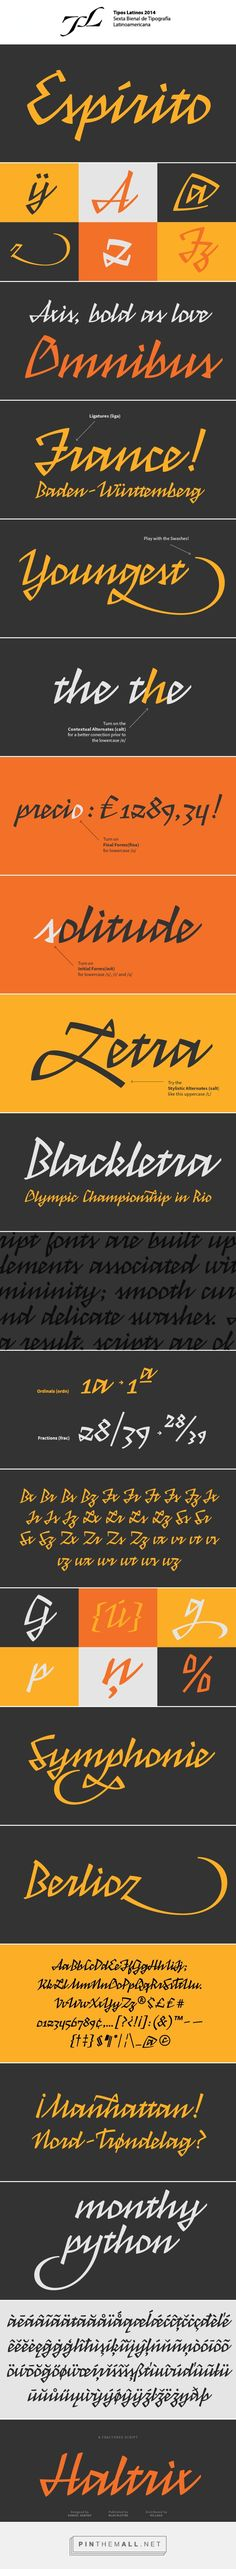 Typeface Haltrix on Behance - - - - - - - - - - - - - -... - a grouped images picture - Pin Them All